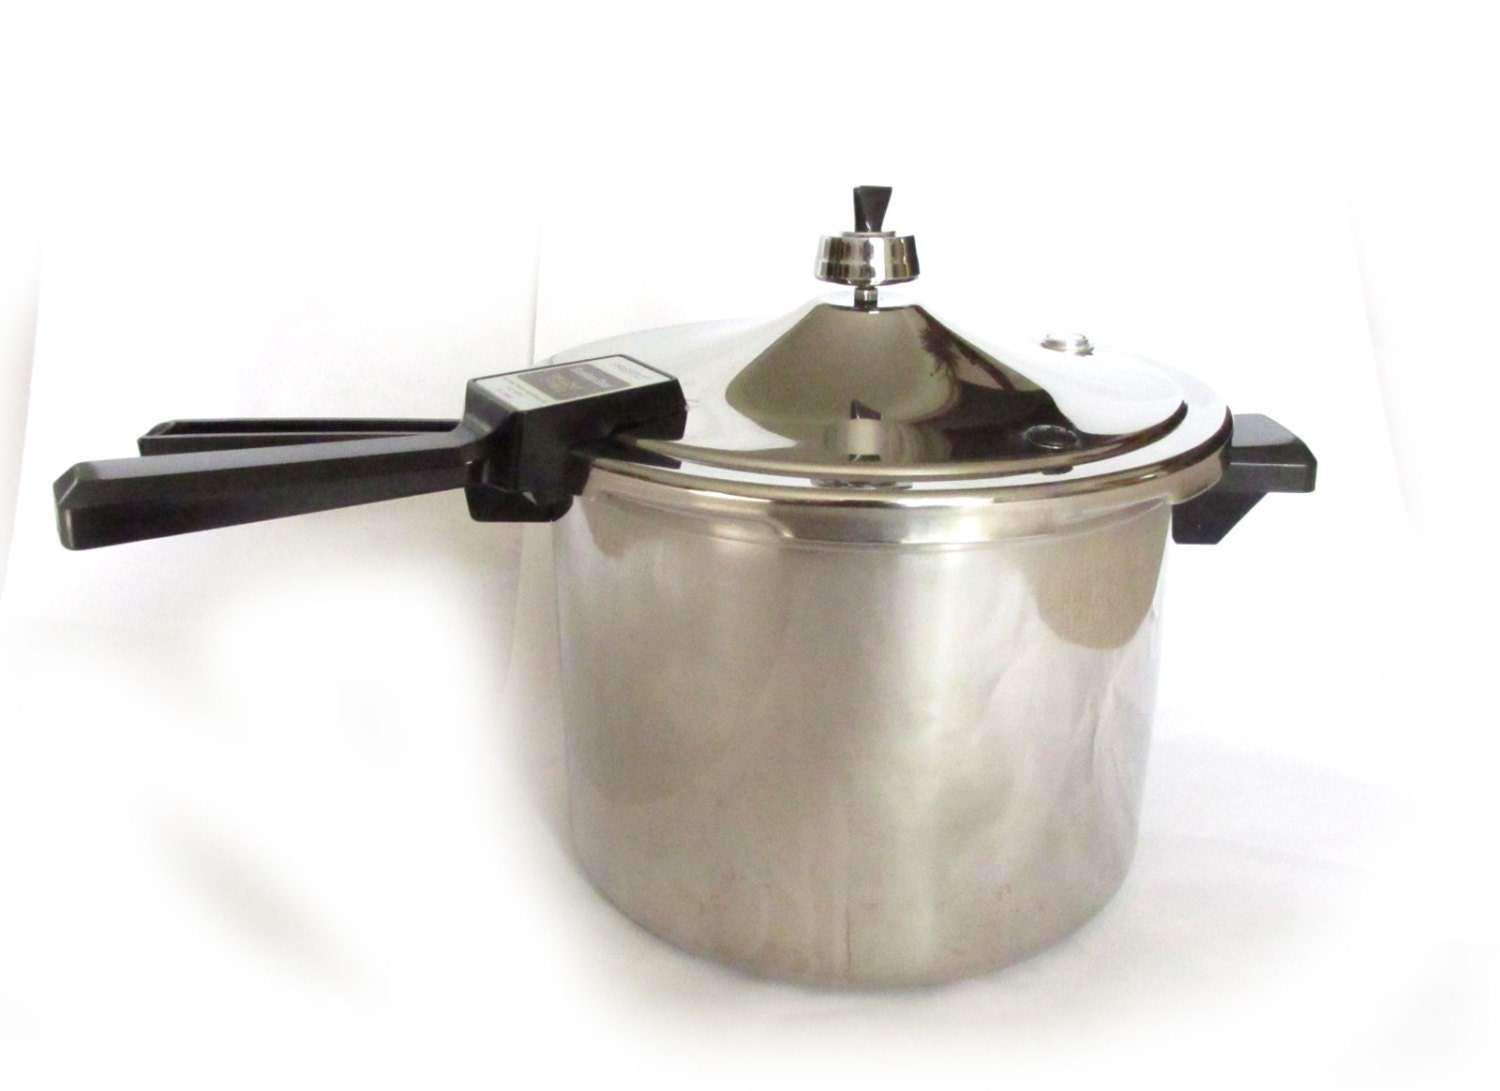 Presto Stainless Steel Pressure Cooker Vintage Old With